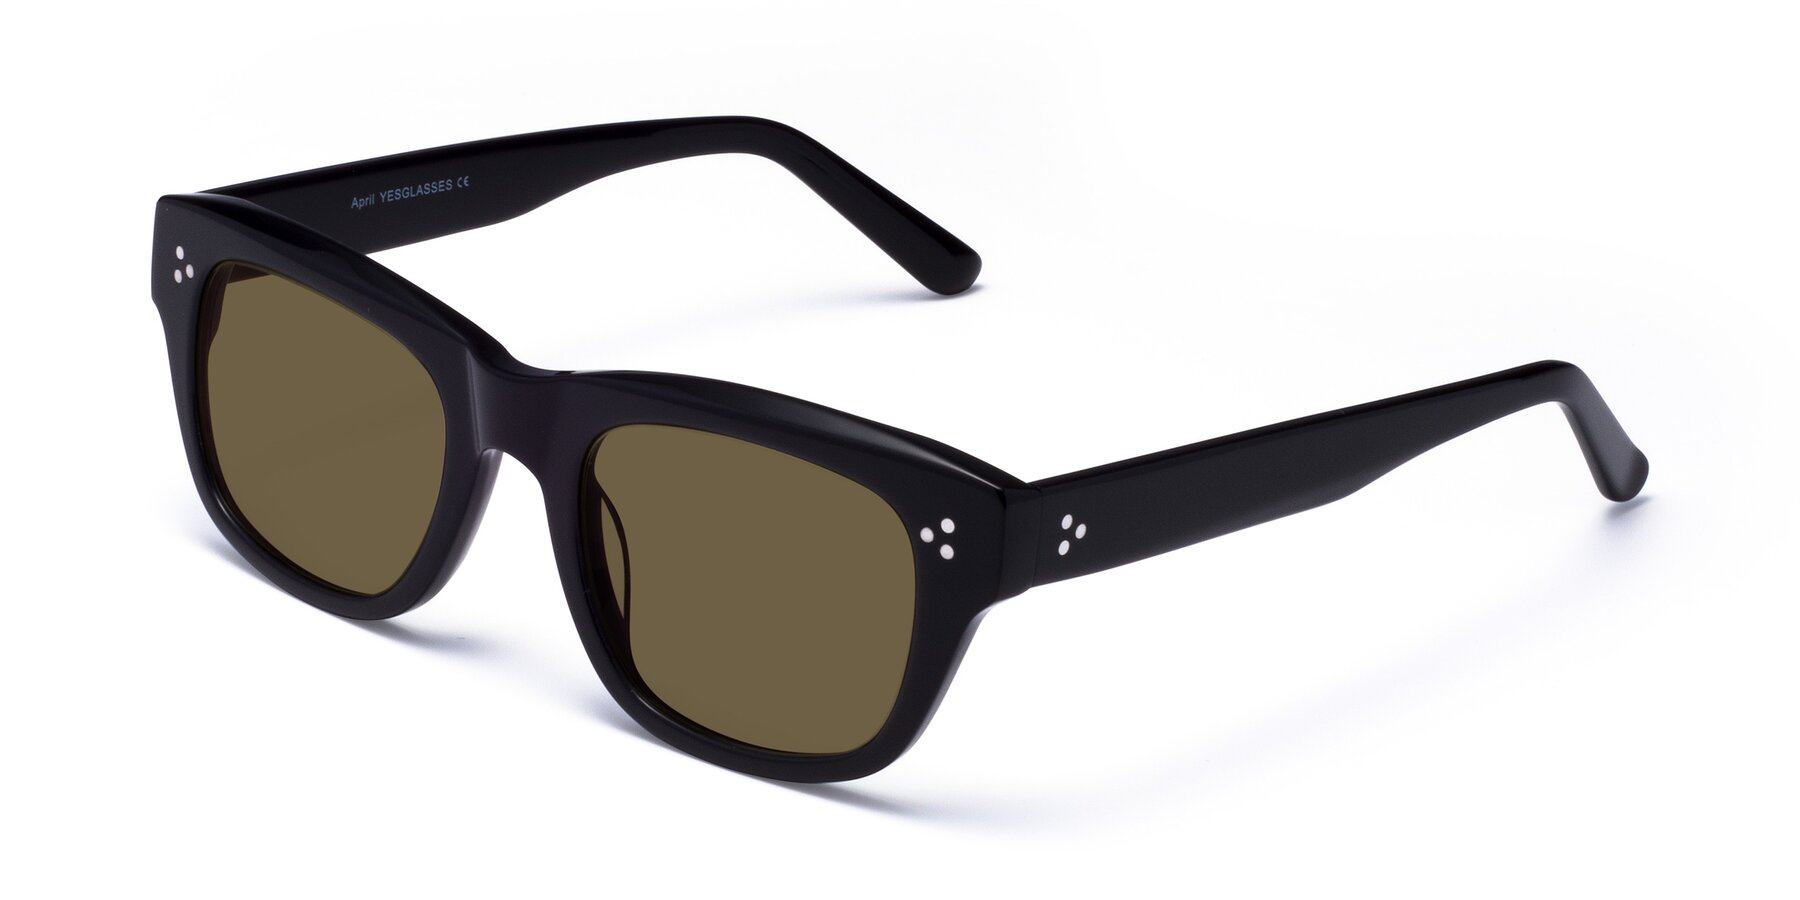 Angle of April in Black with Brown Polarized Lenses